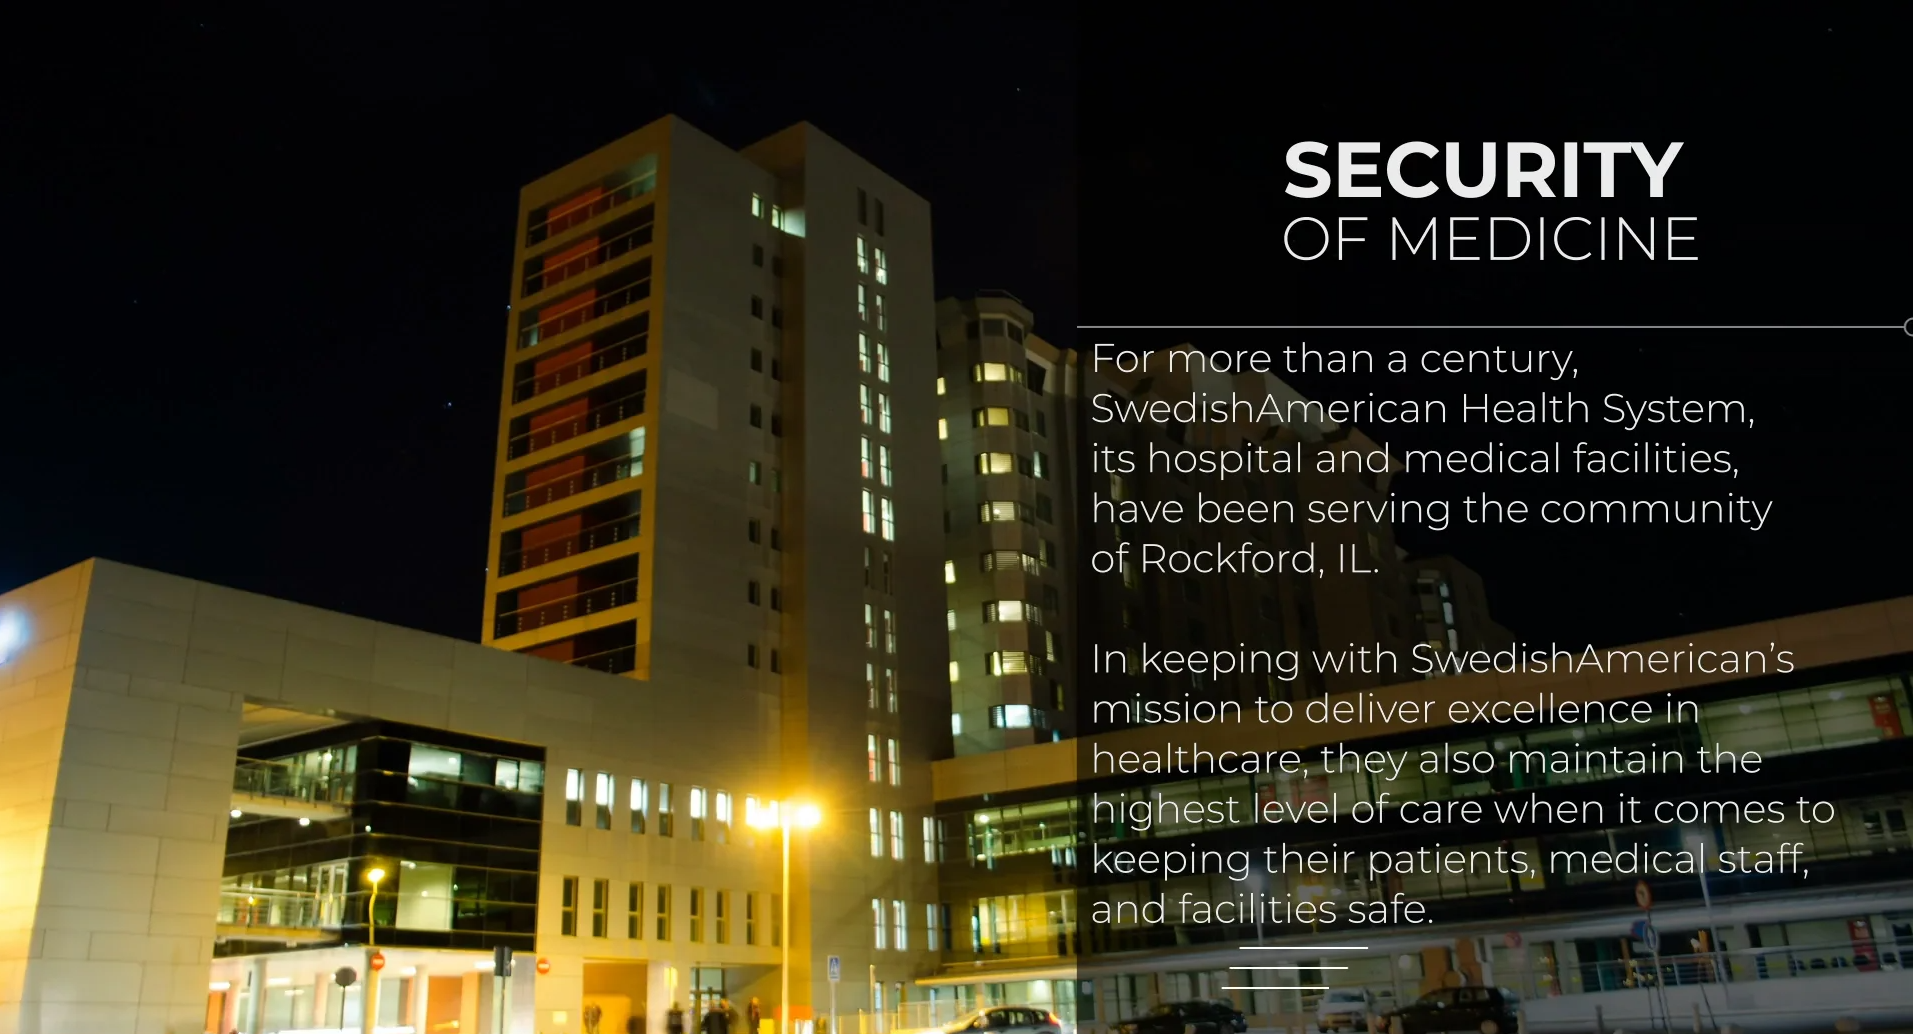 poster image for The Security of Medicine :: SwedishAmerican Health System video